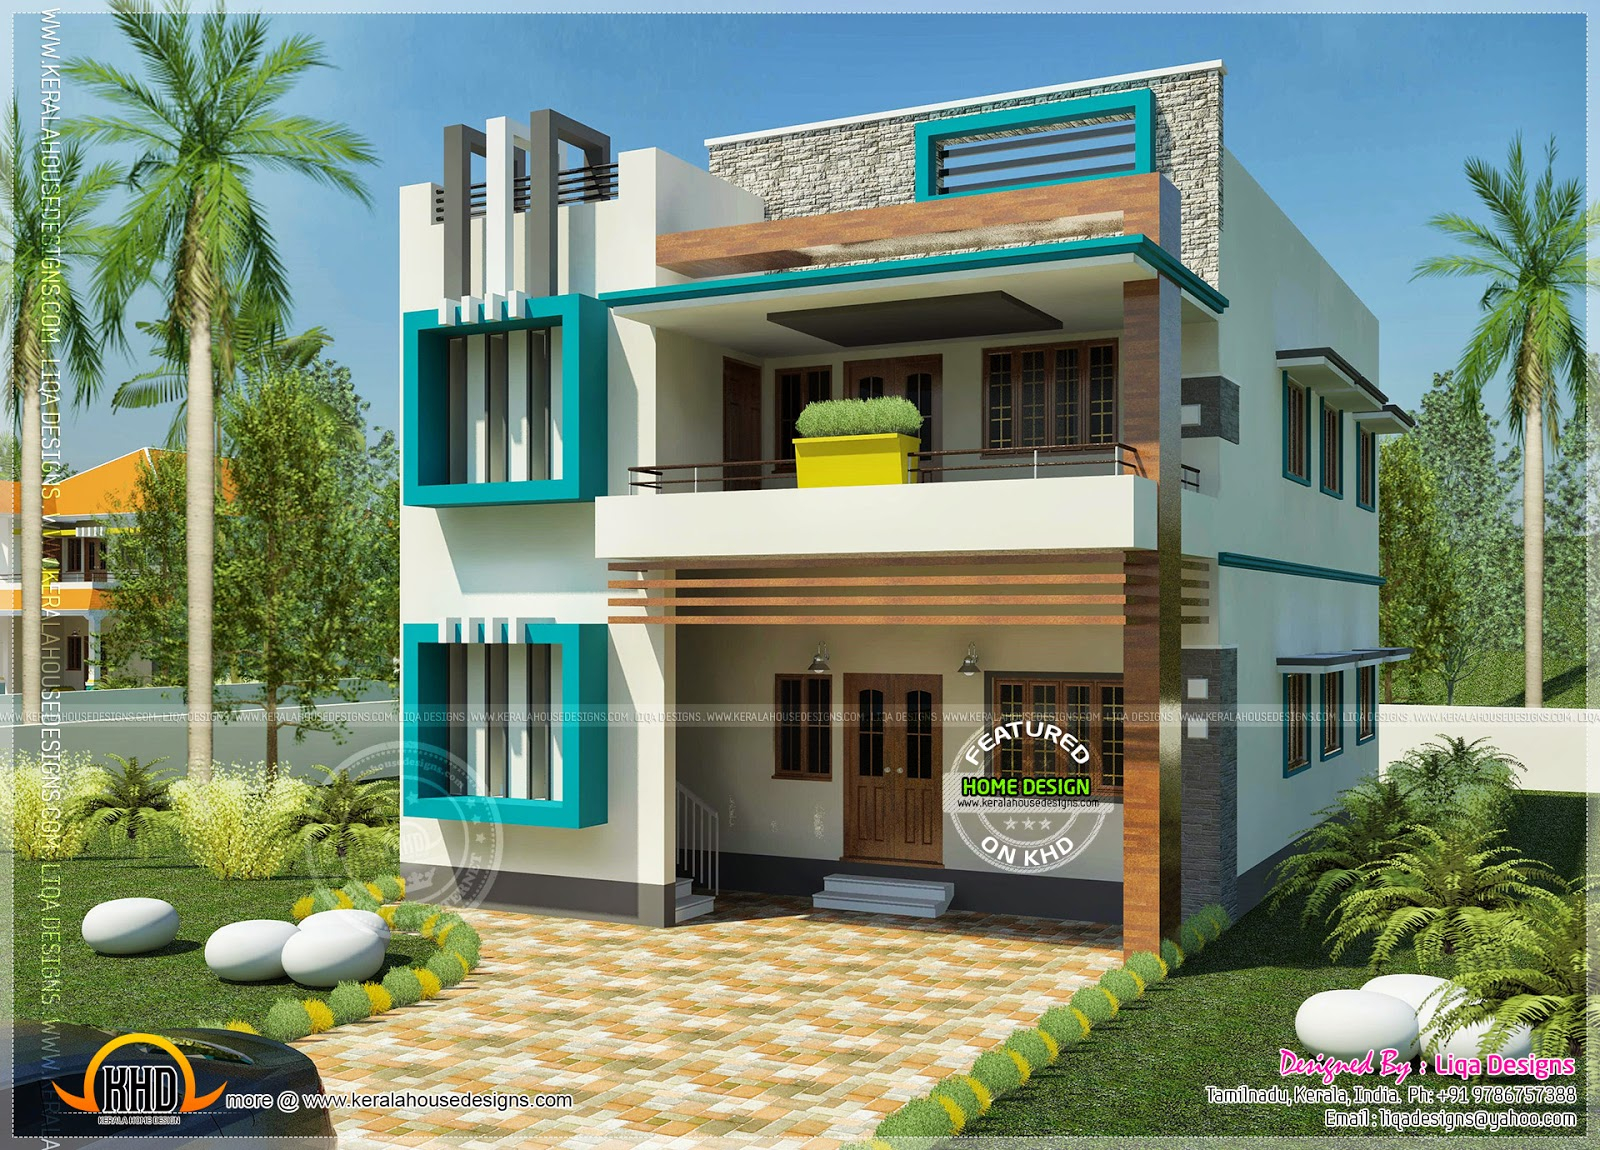 Beautiful Exterior Design Simple Interiors For Indian Homes Home Design Ideas regarding Indian Home Exterior Design